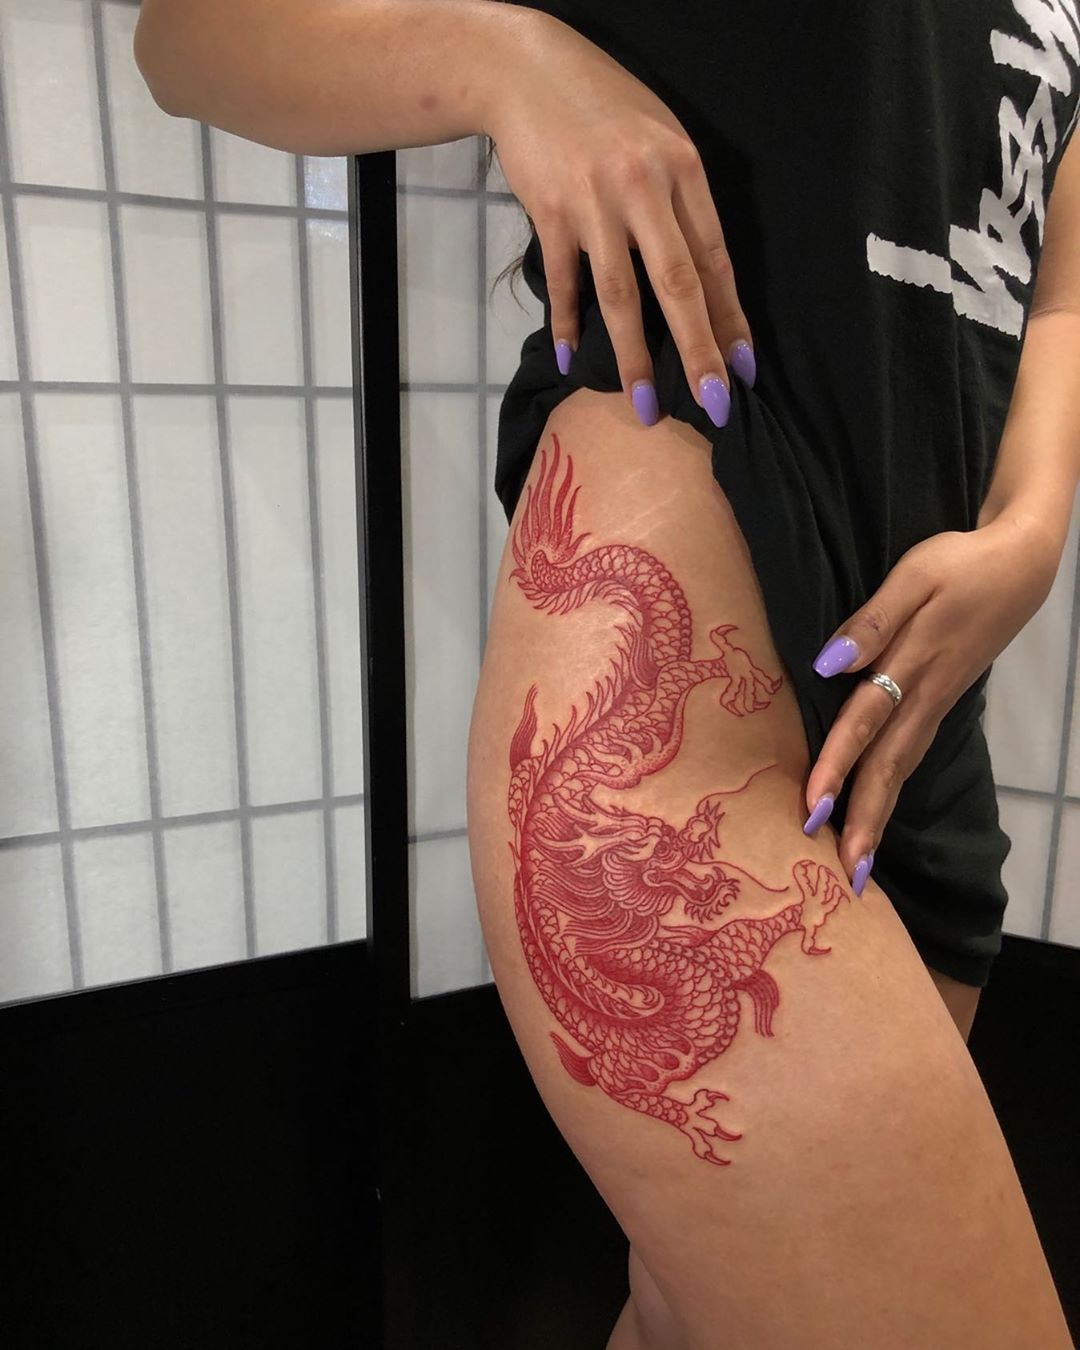 Red Dragon Hip Tattoo Tattoo Ideas And Inspiration Red Dragon Hip Tattoo Tattoo Ideas And Inspir In 2020 Dragon Tattoo For Women Red Tattoos Dragon Thigh Tattoo